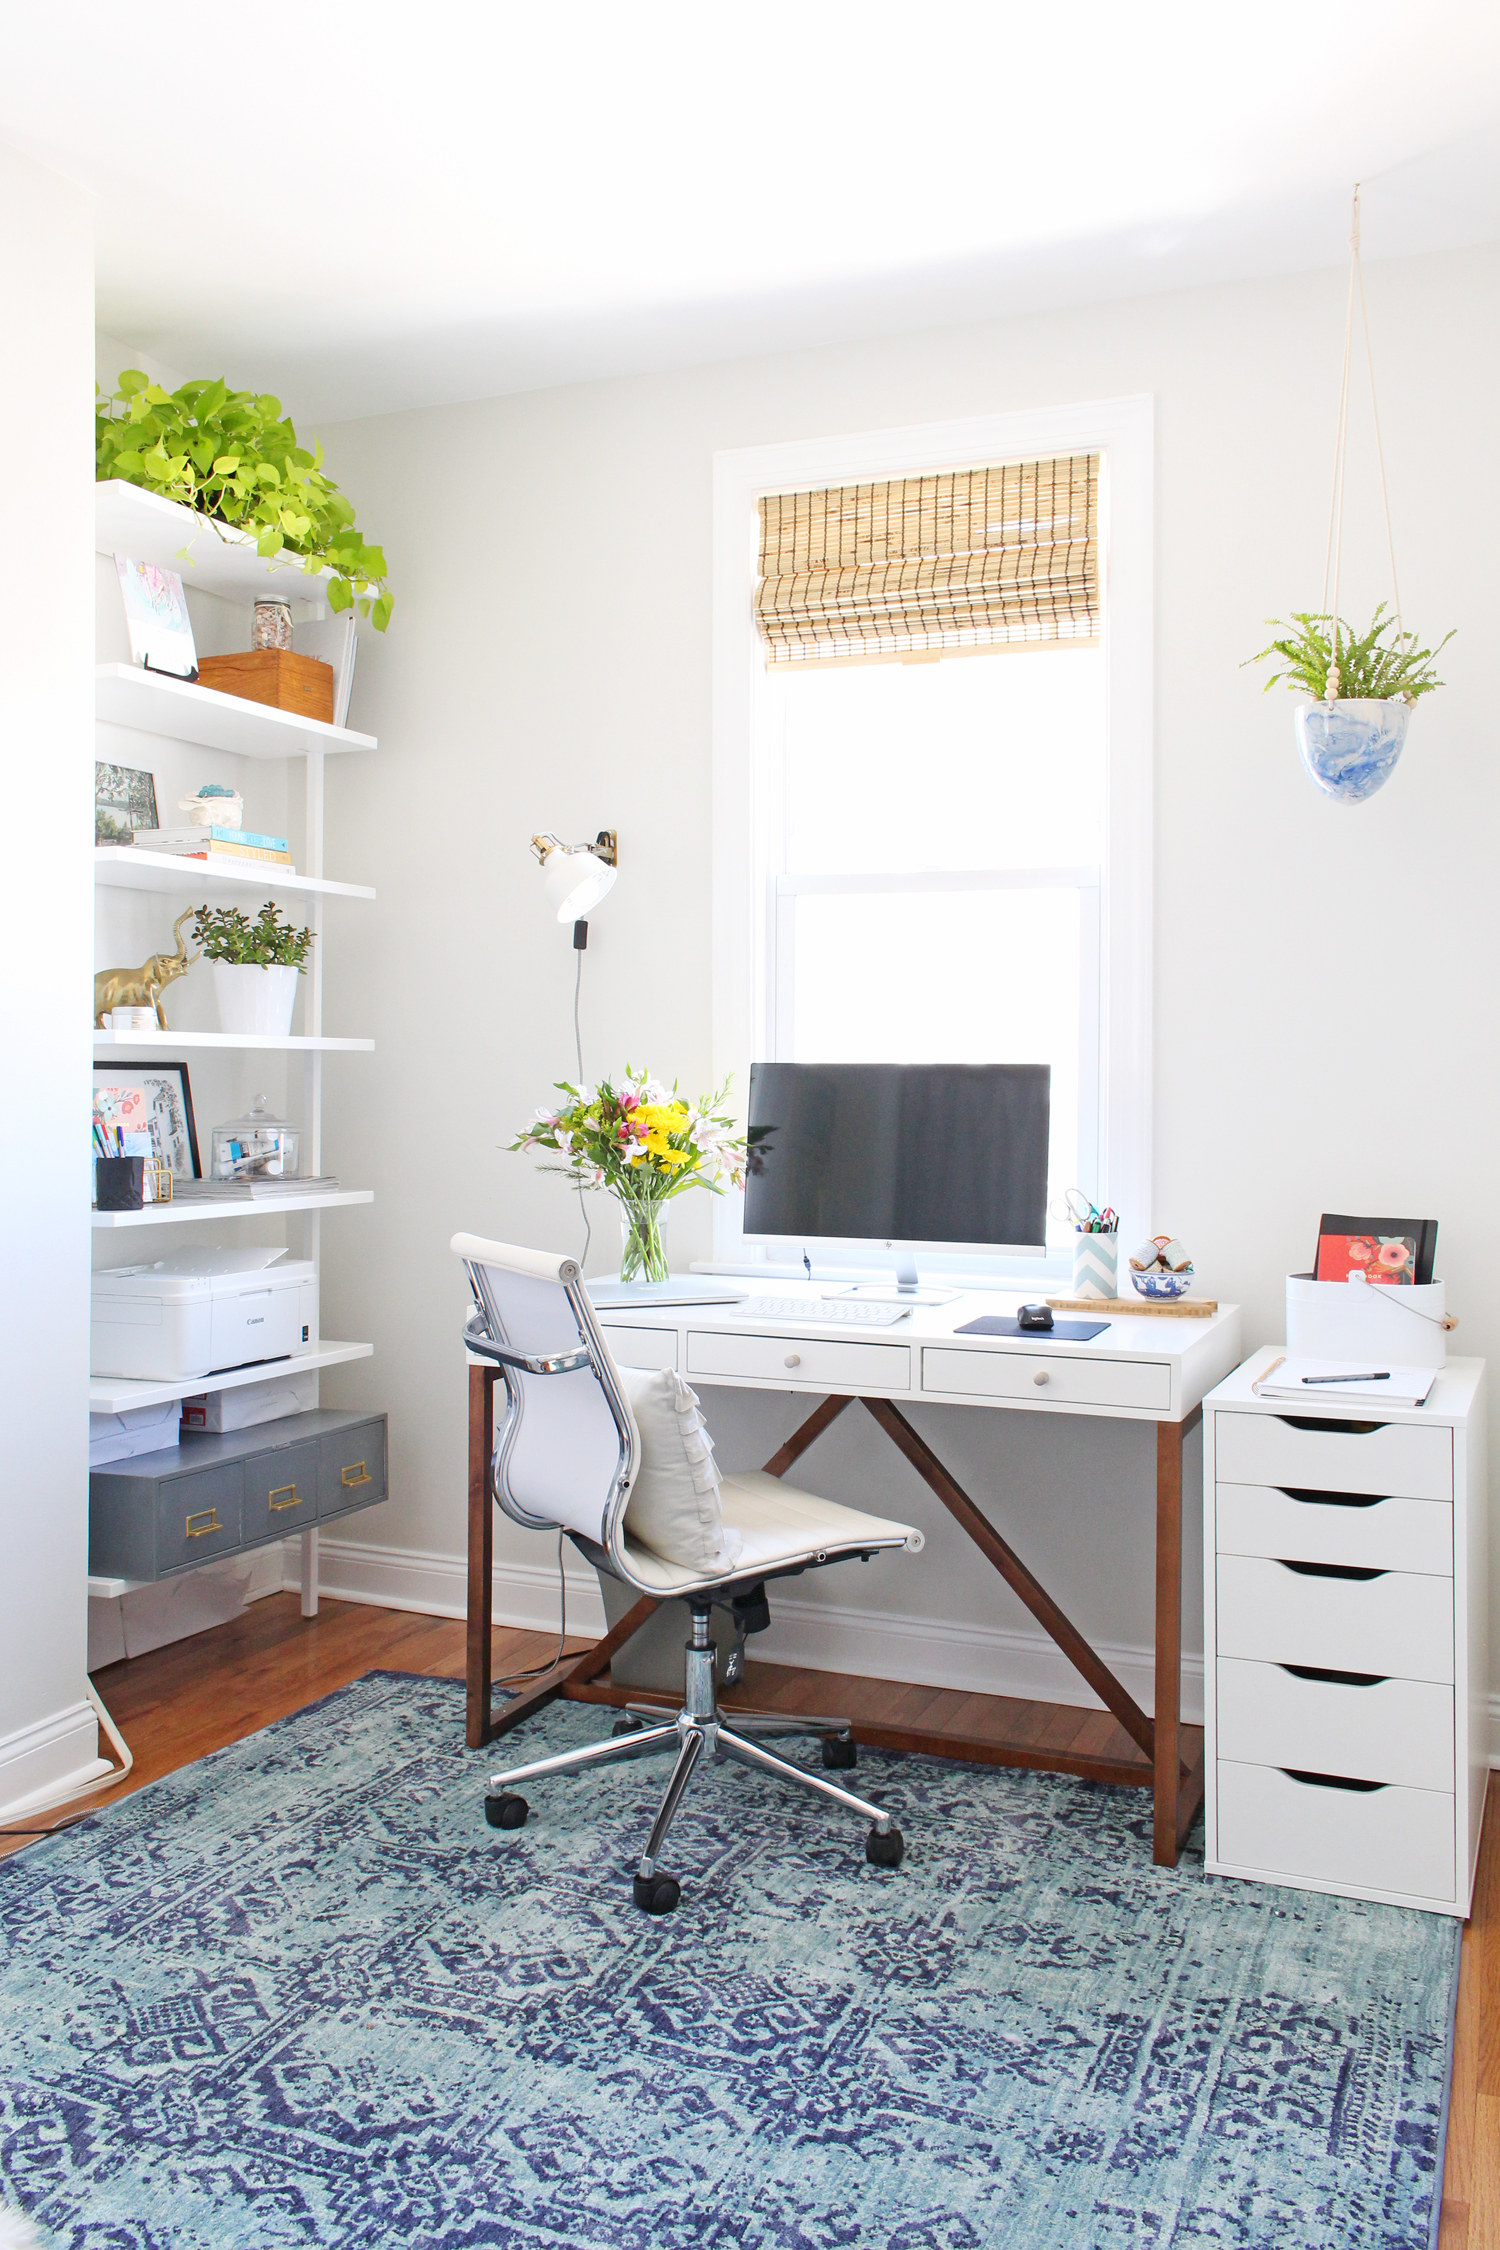 An interior designer's cozy, bright, and modern home office.